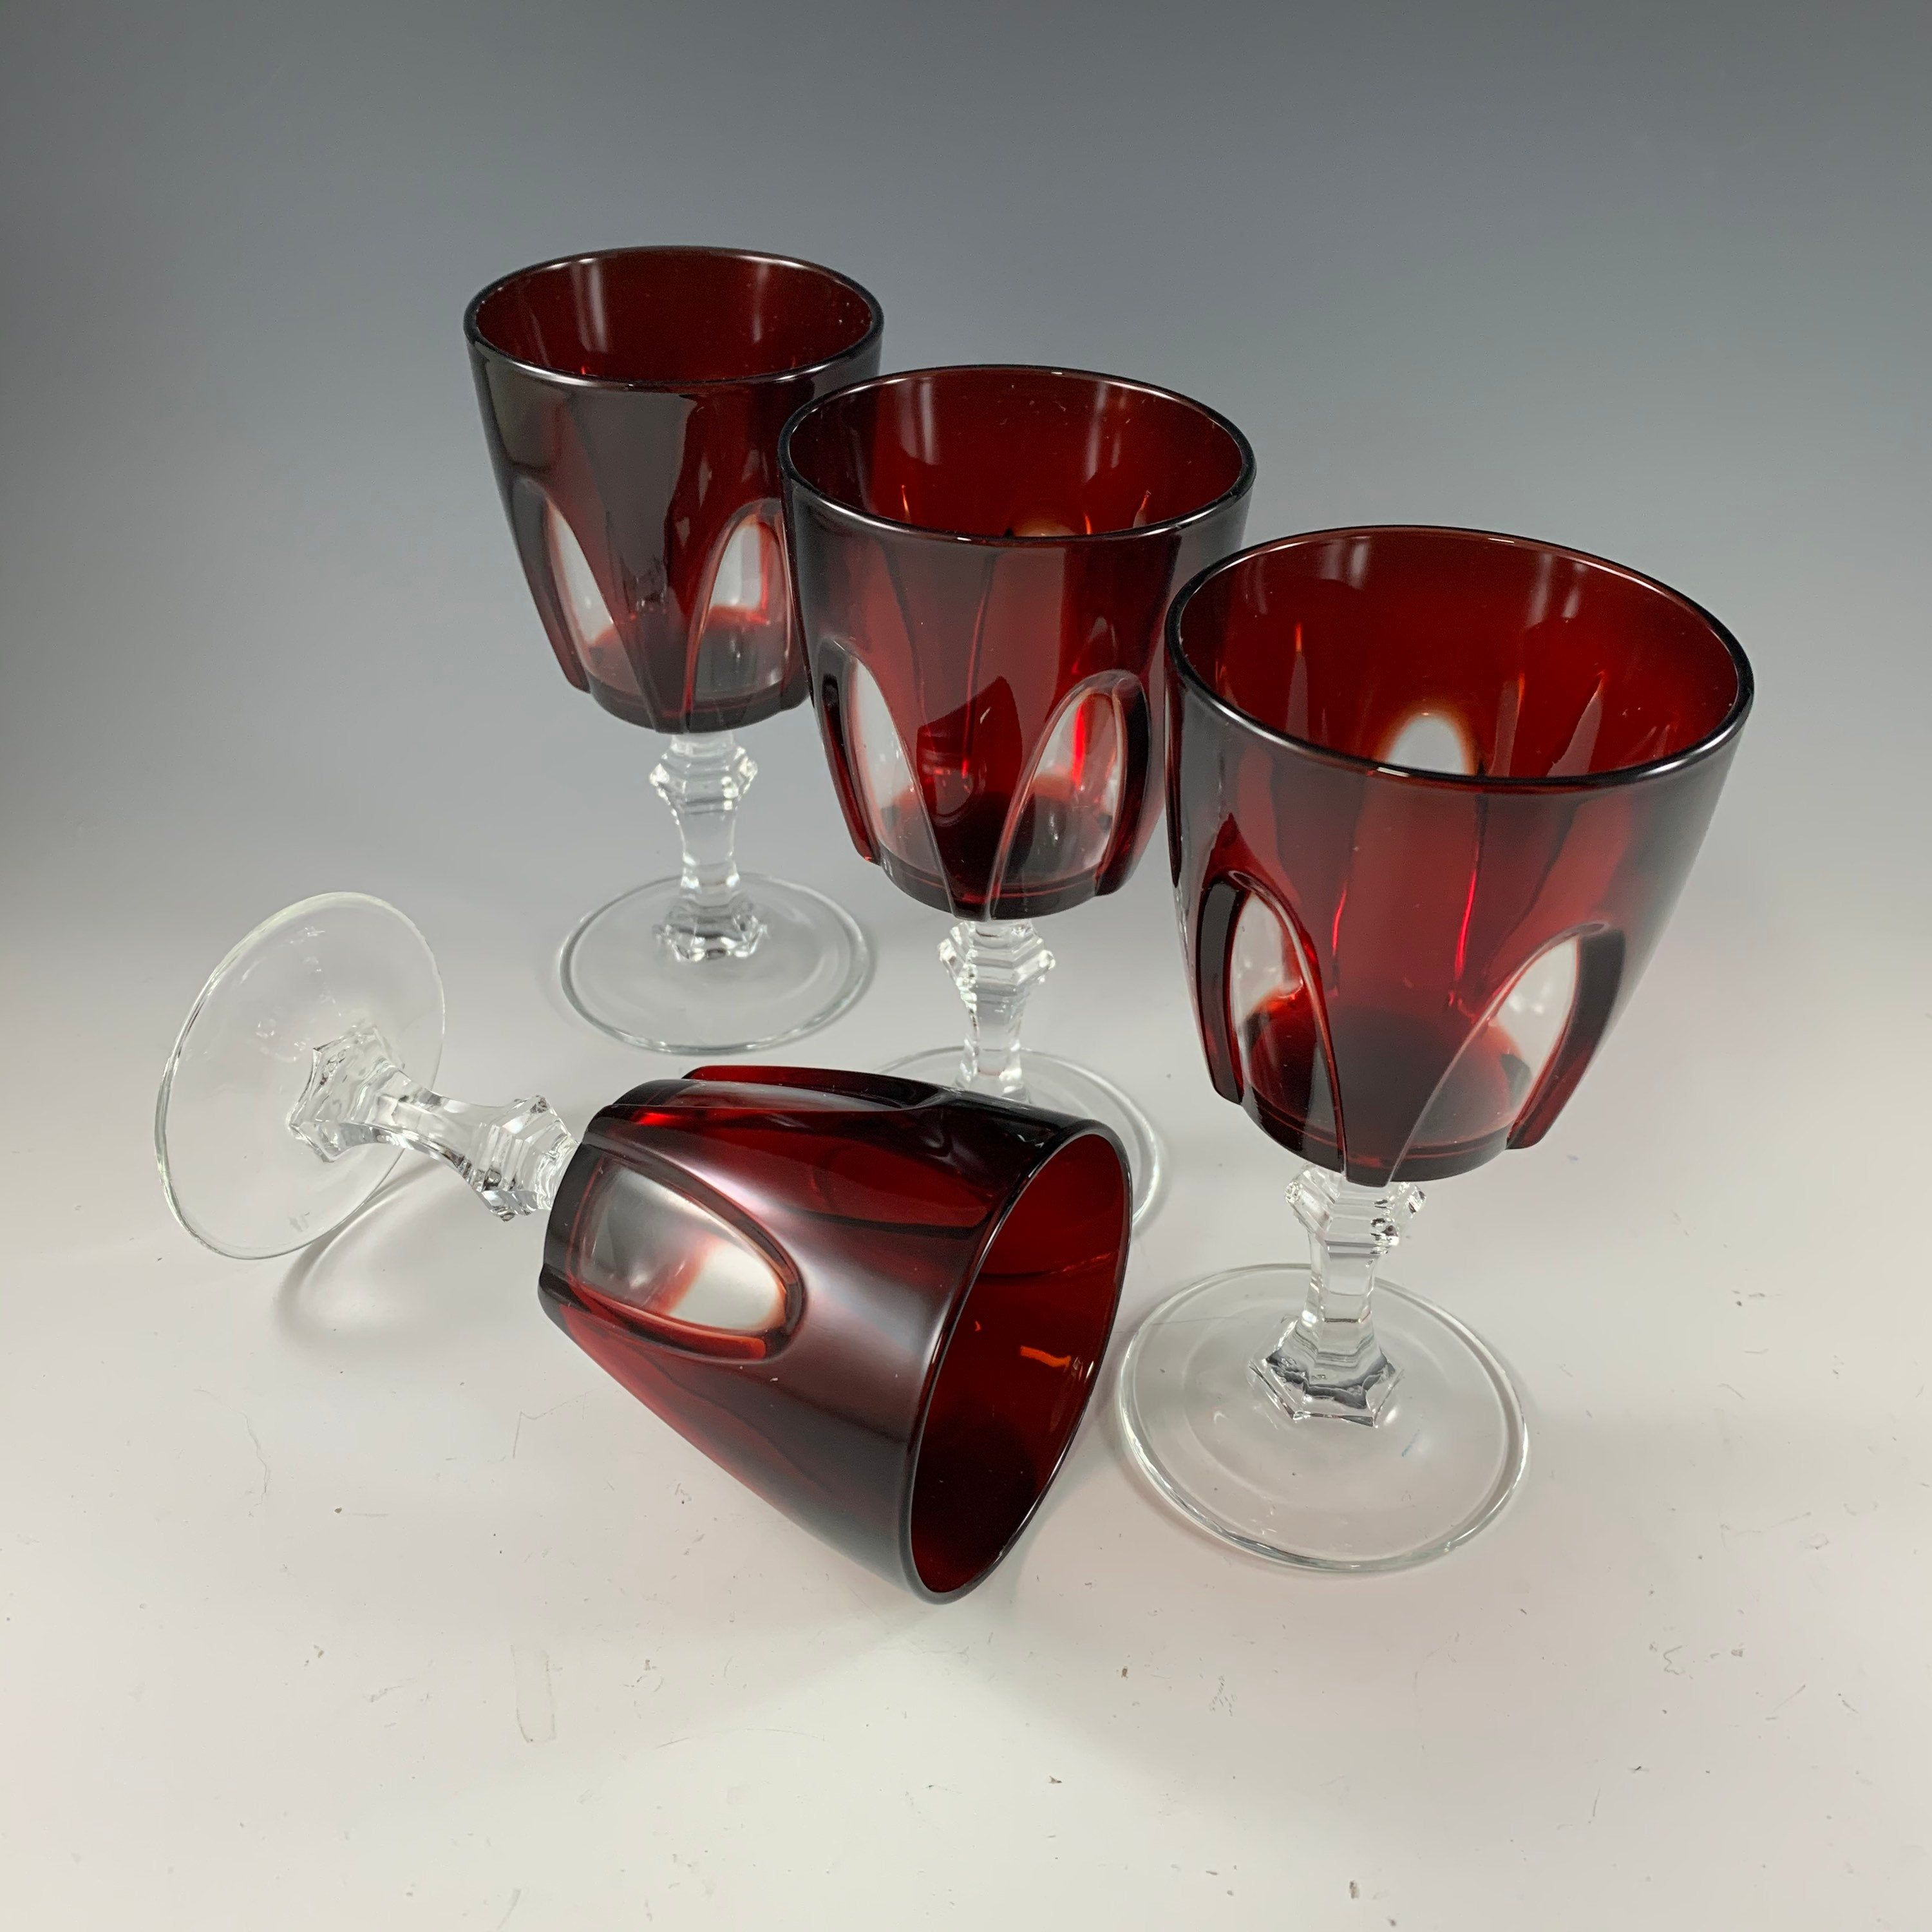 Cristal D Arques Gothic Wine Glasses Set Of 4 In 2020 Gothic Wine Wine Glasses Arques